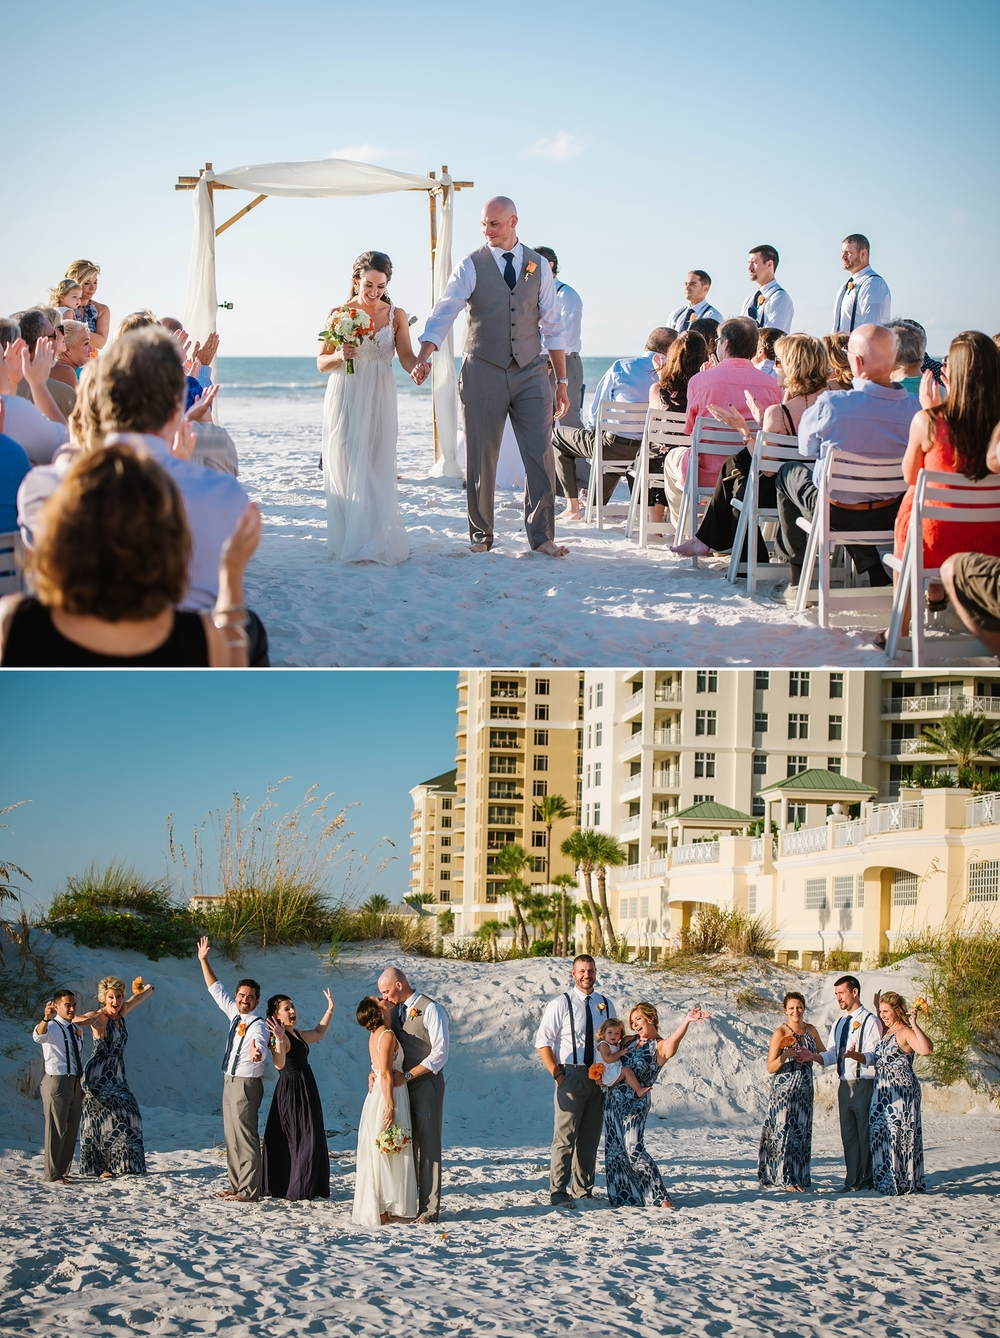 clearwater-beach-wedding-photography-ashlee-hamon_0022.jpg